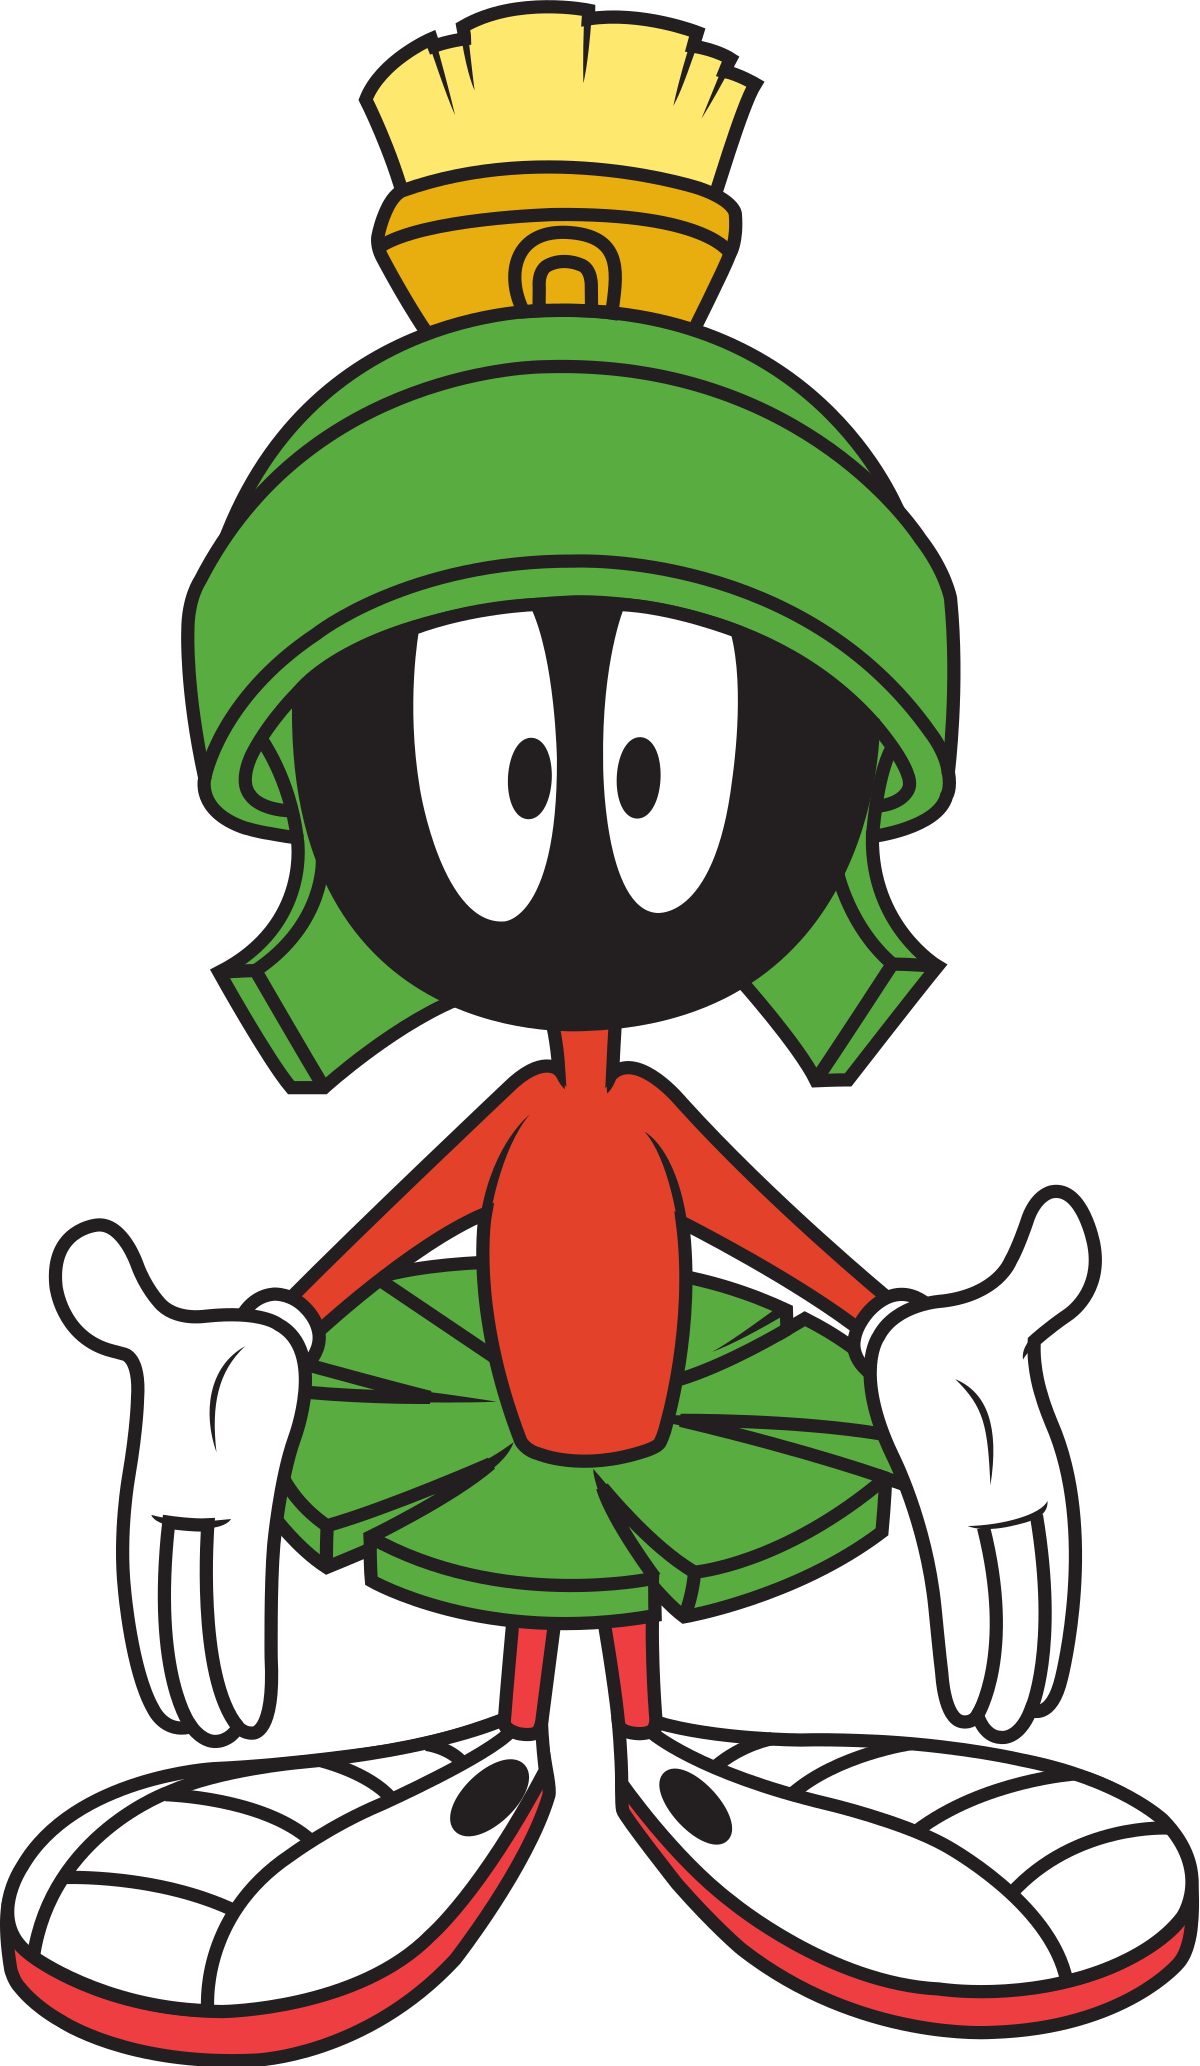 Alien clipart drawing mars. Marvin the martian wikipedia